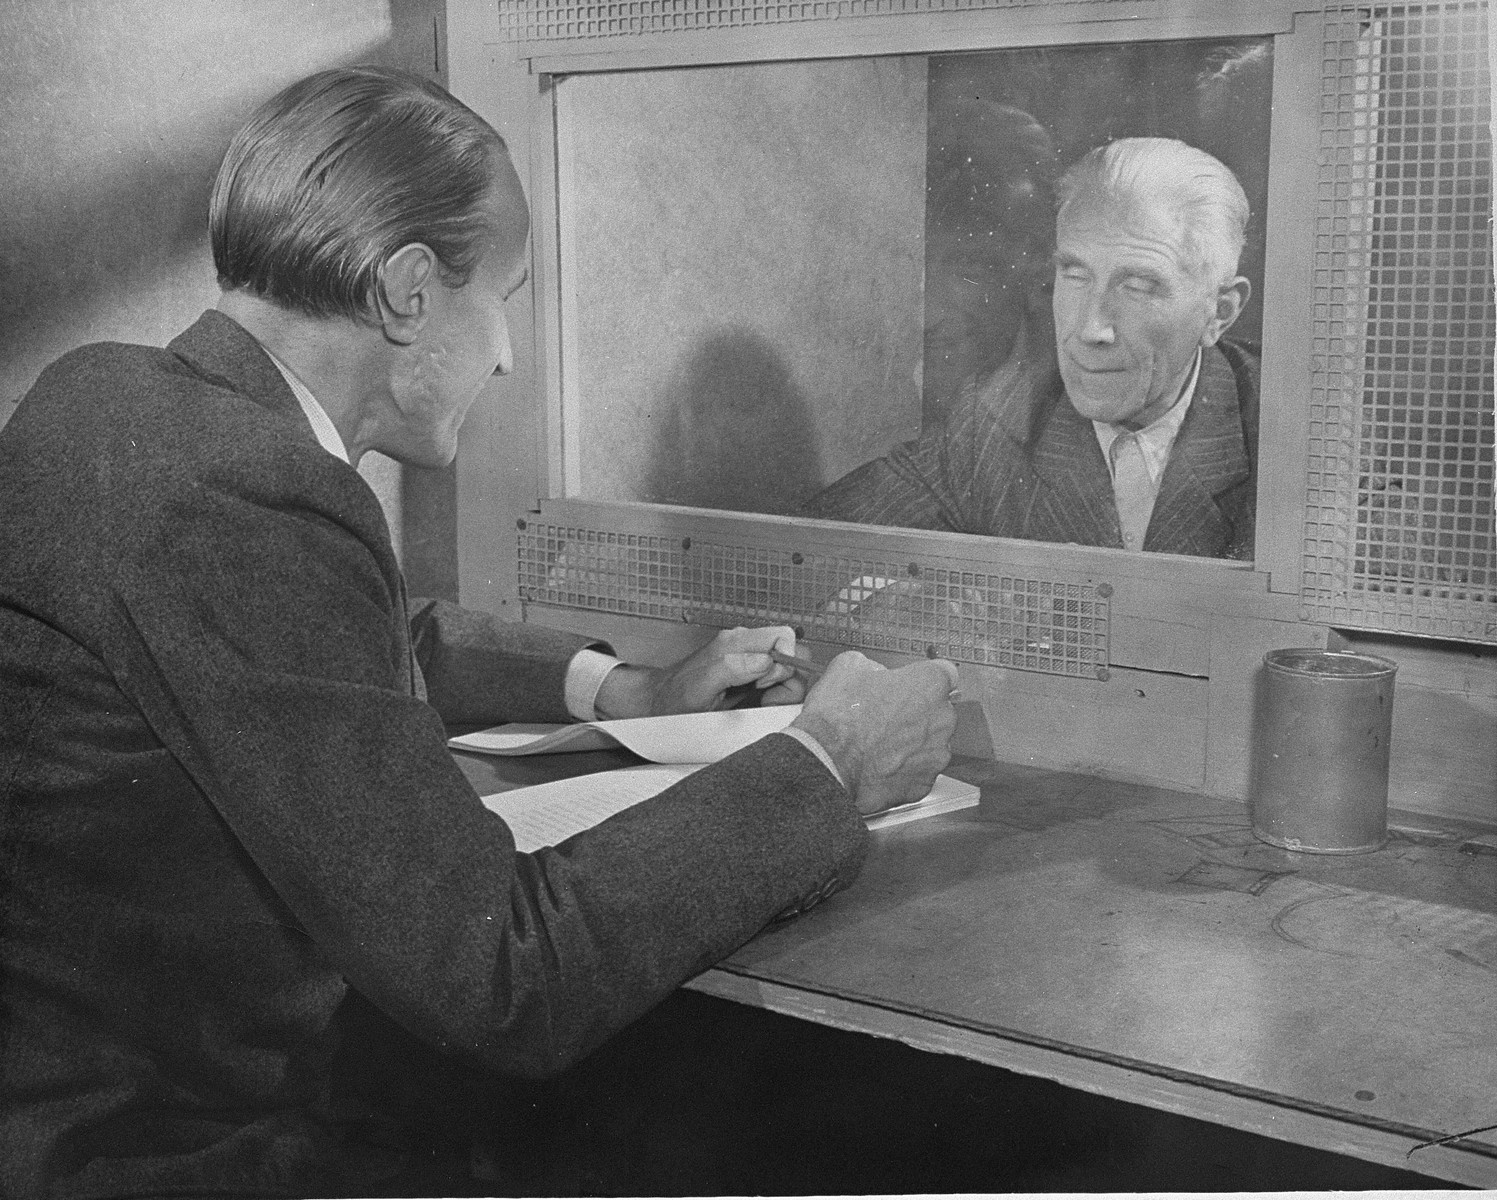 Defendant Franz von Papen receives a visit from his son while in prison at the International Military Tribunal trial of war criminals at Nuremberg.